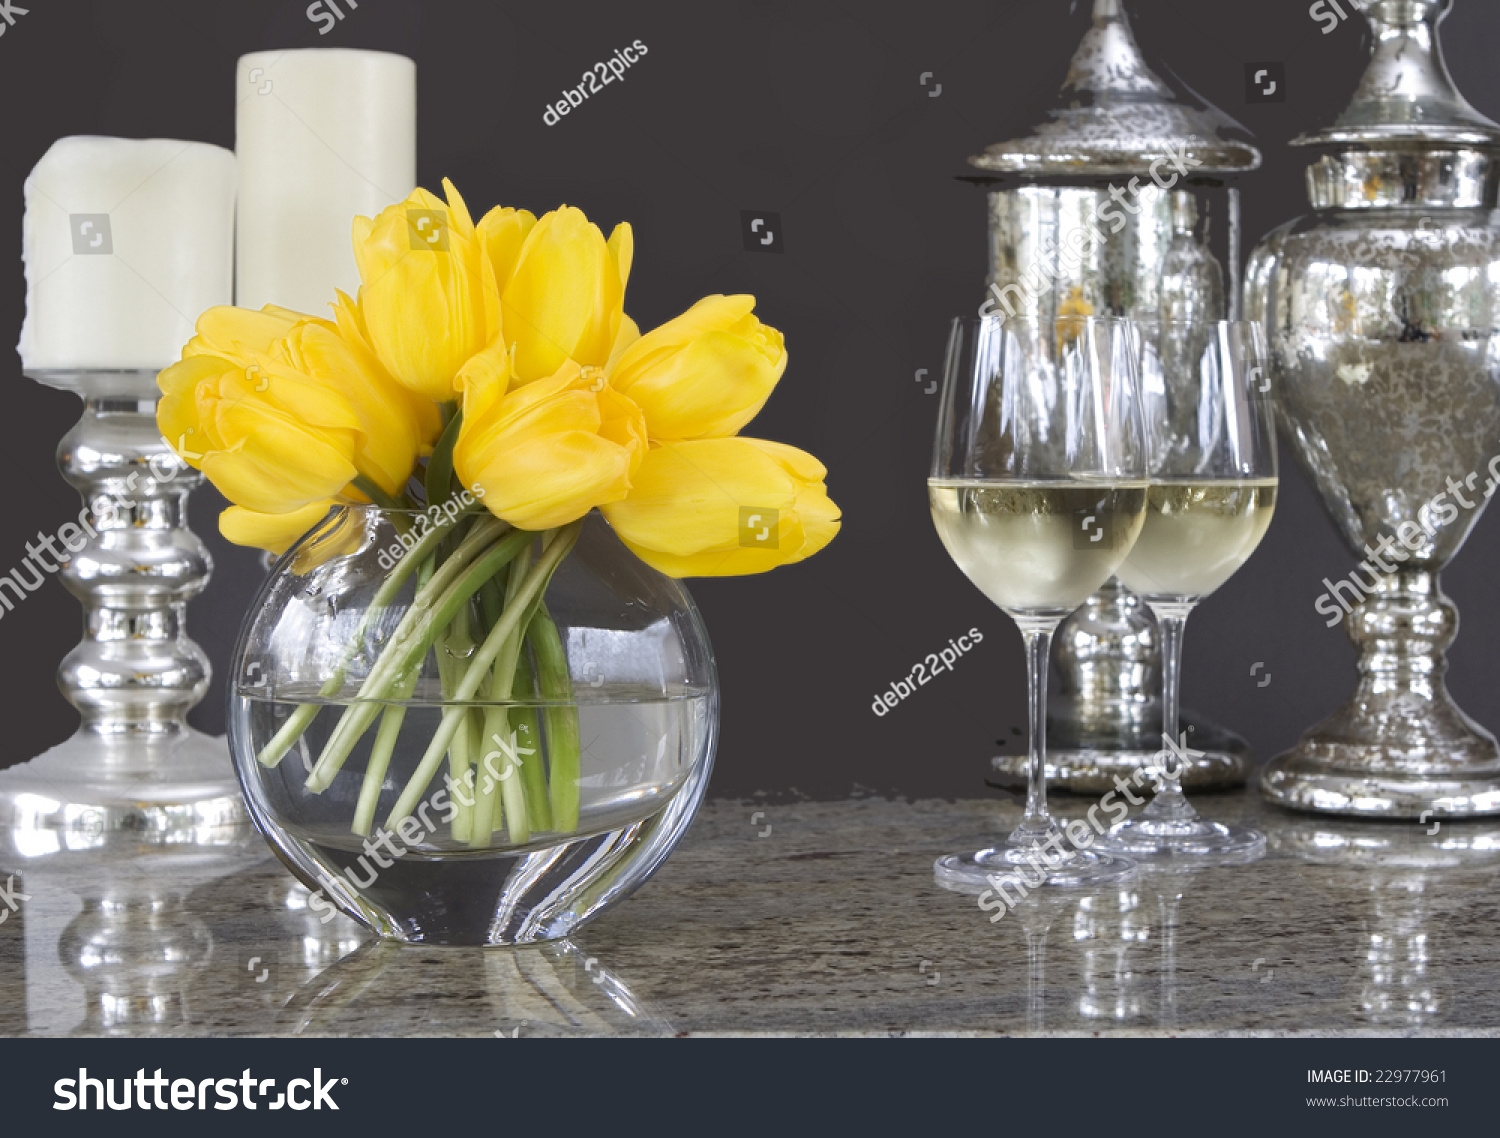 Elegant Home Decor Accessories: Yellow Tulips In Vase With Glasses Of Wine & Home Decor